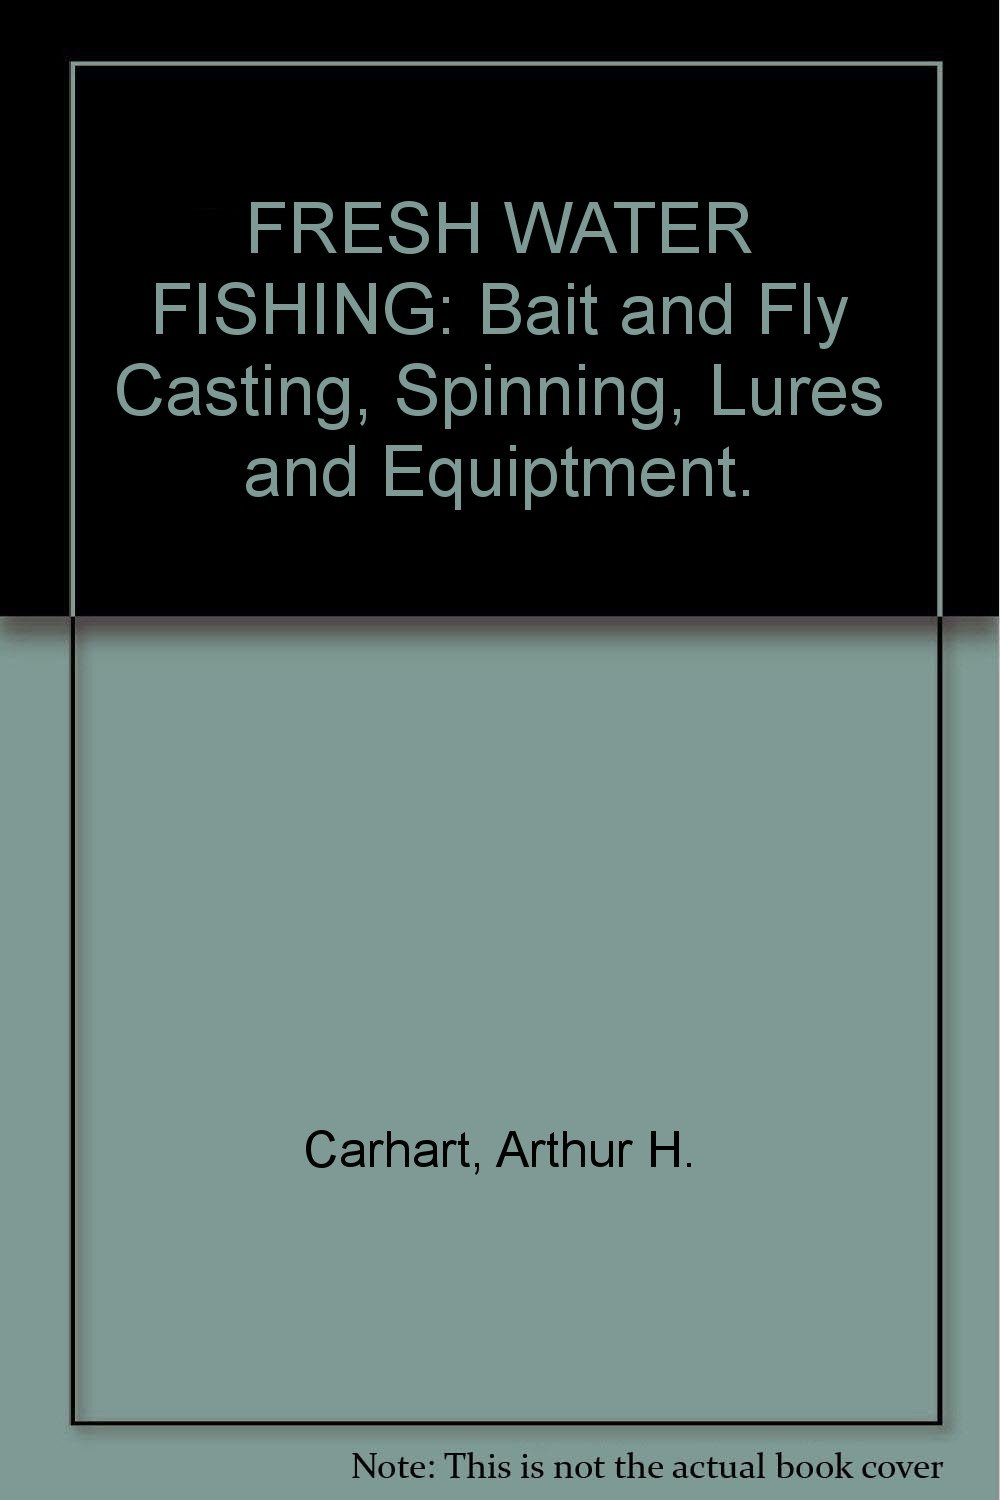 FRESH WATER FISHING: Bait and Fly Casting, Spinning, Lures and Equiptment.